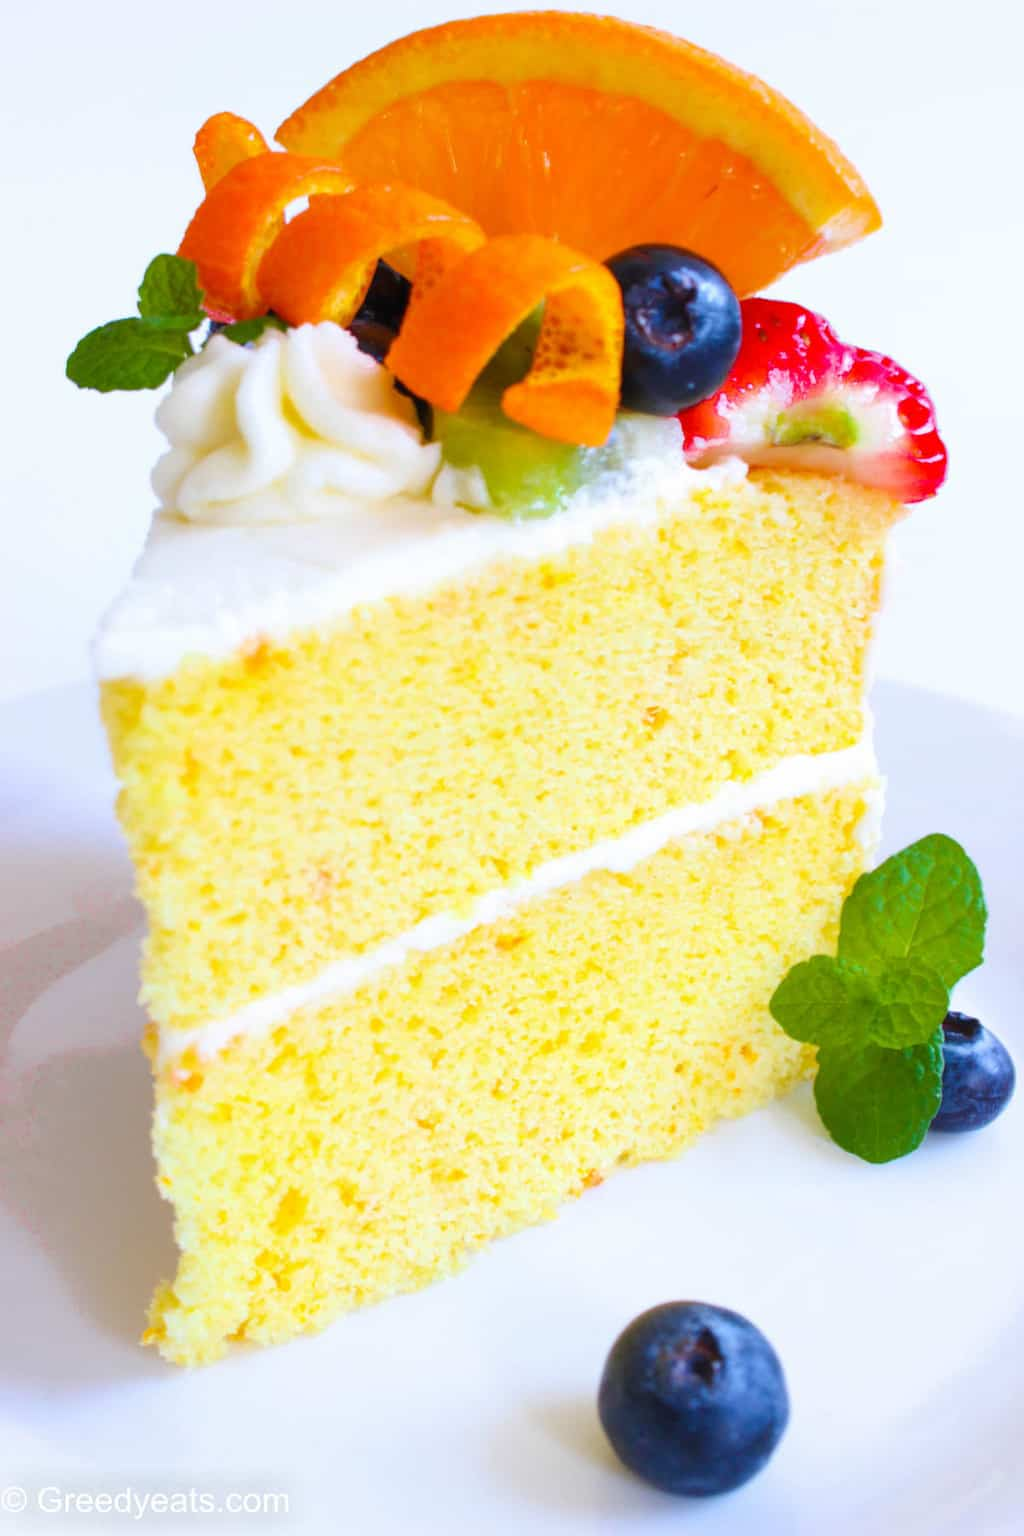 Easy orange chiffon cake recipe with fresh fruits and whipped cream!